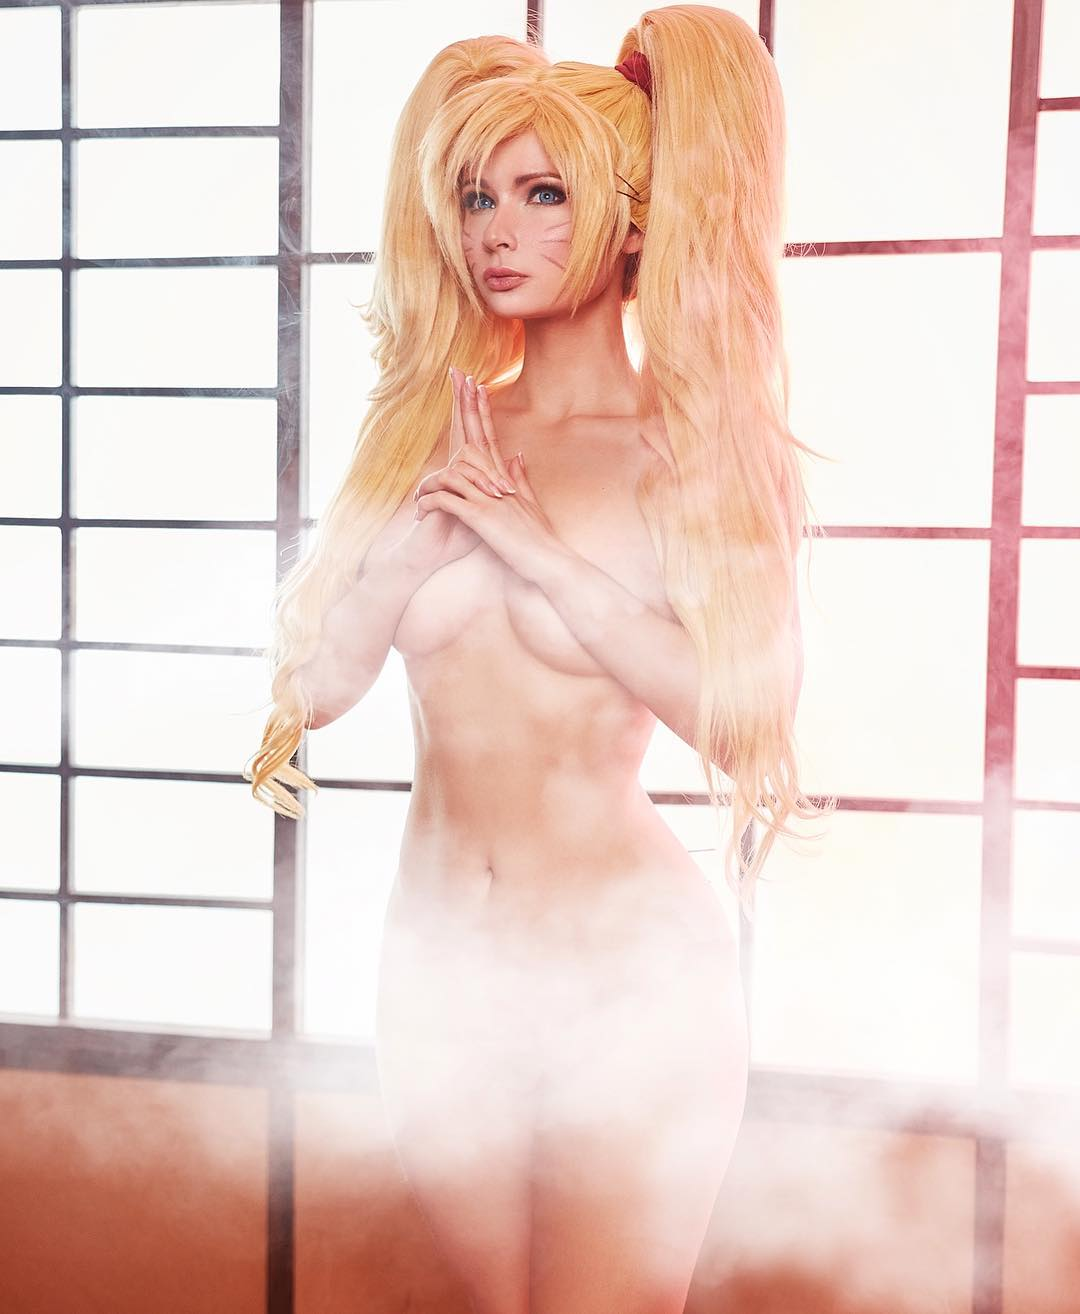 Jannet Incosplay Sexy Boobs Pictures Topless